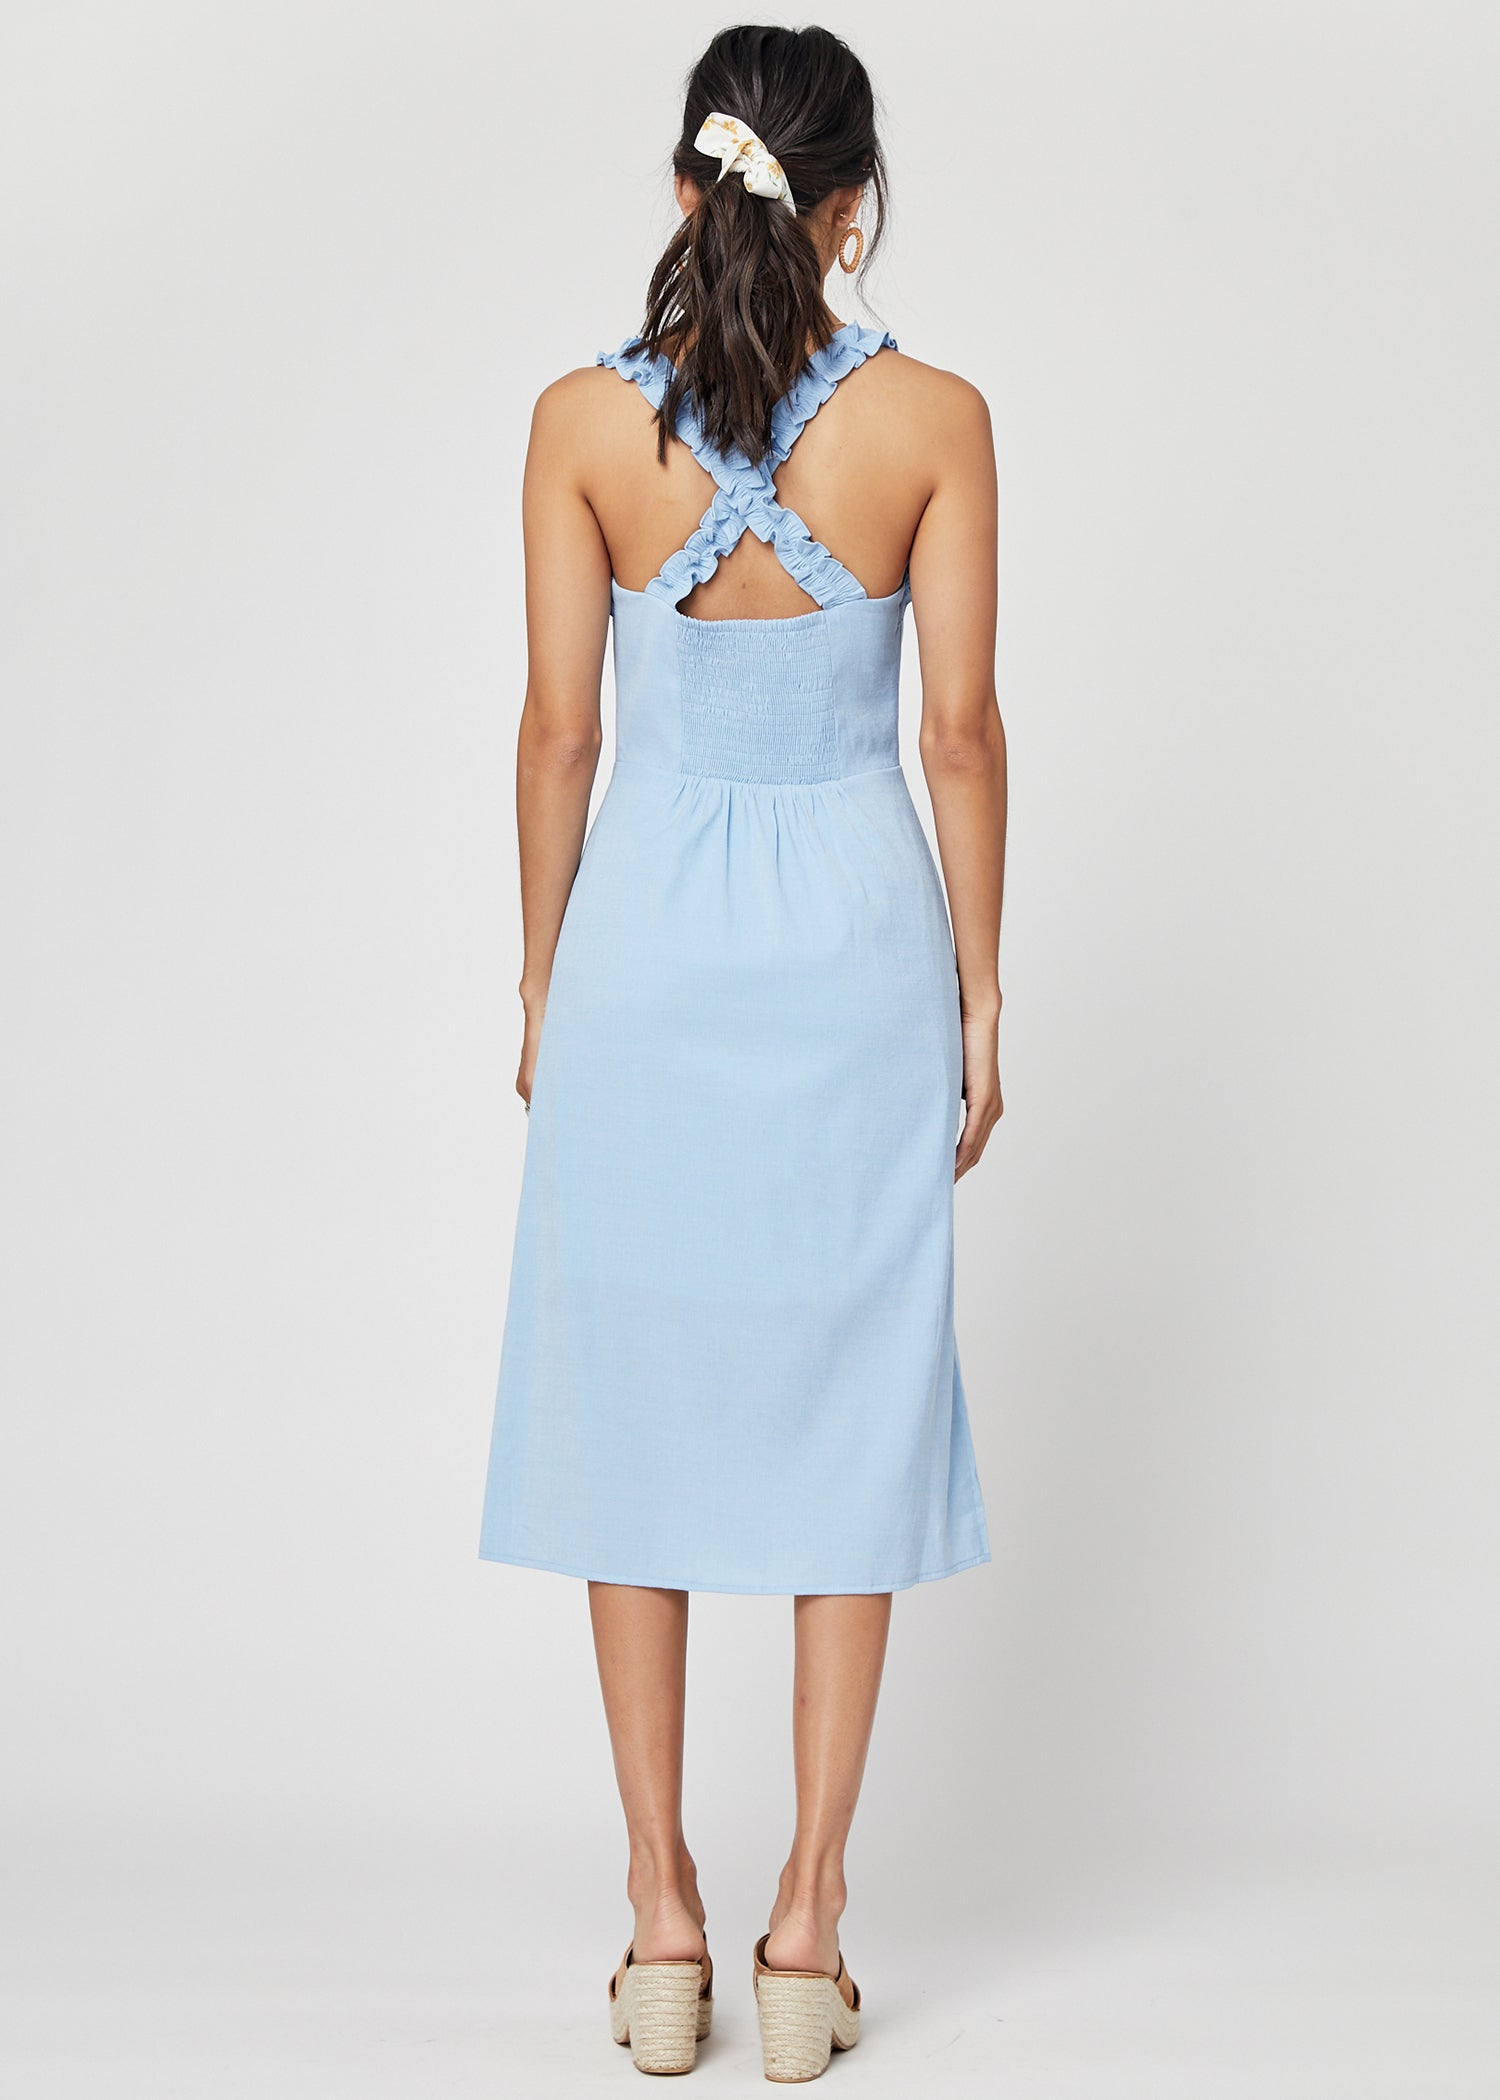 Bella Ruffle Midi Dress